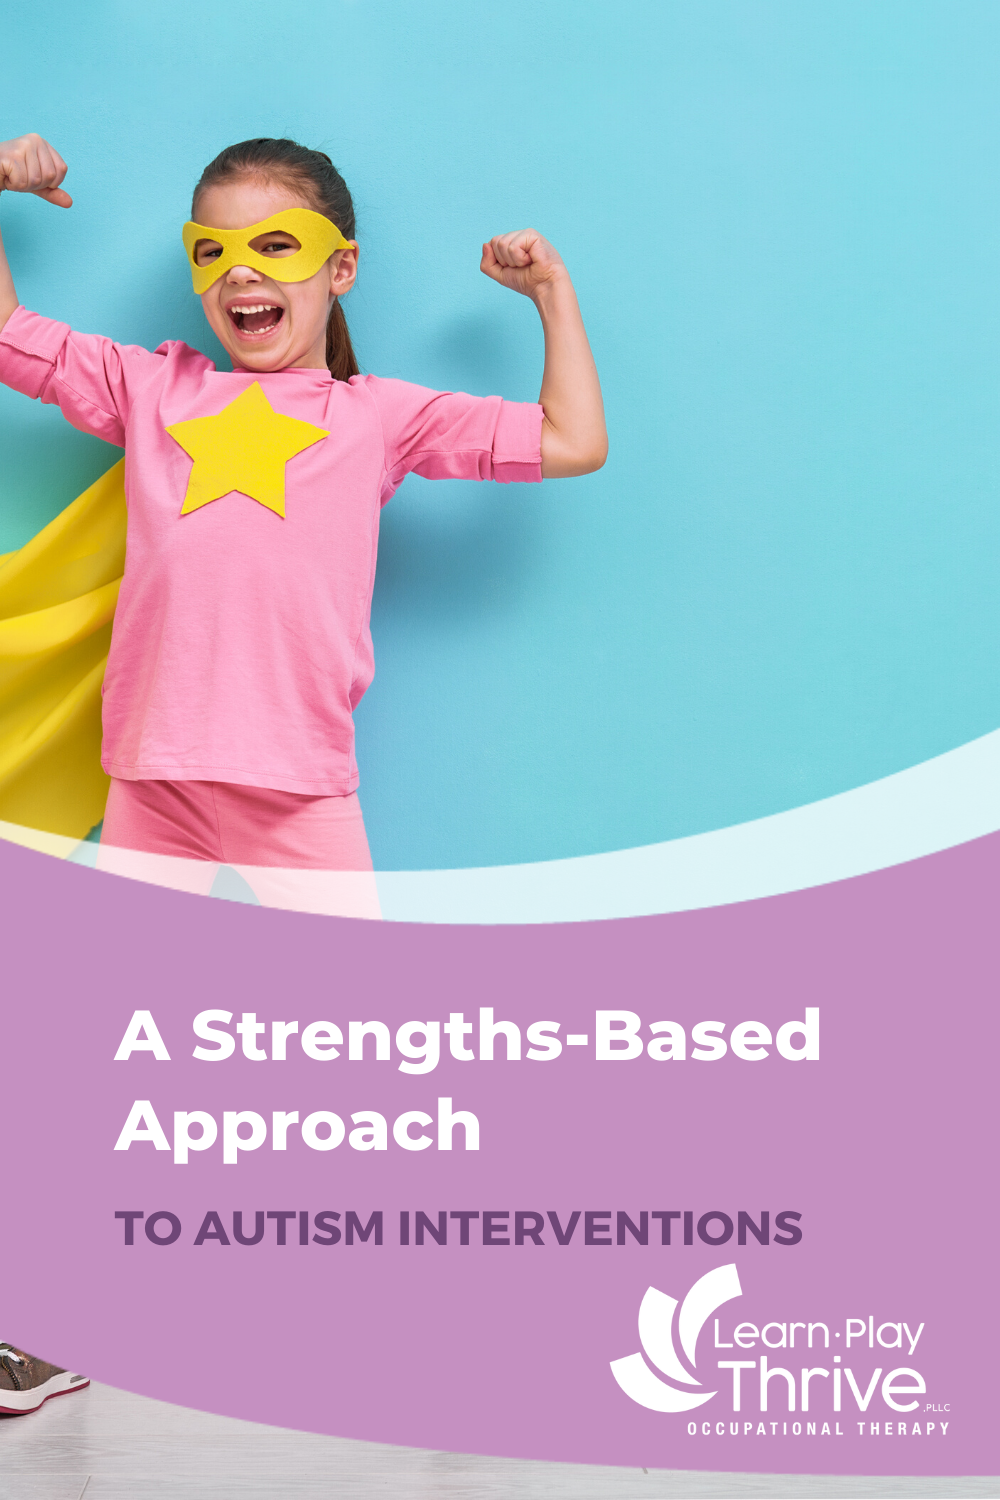 A strengths-based approach to autism interventions